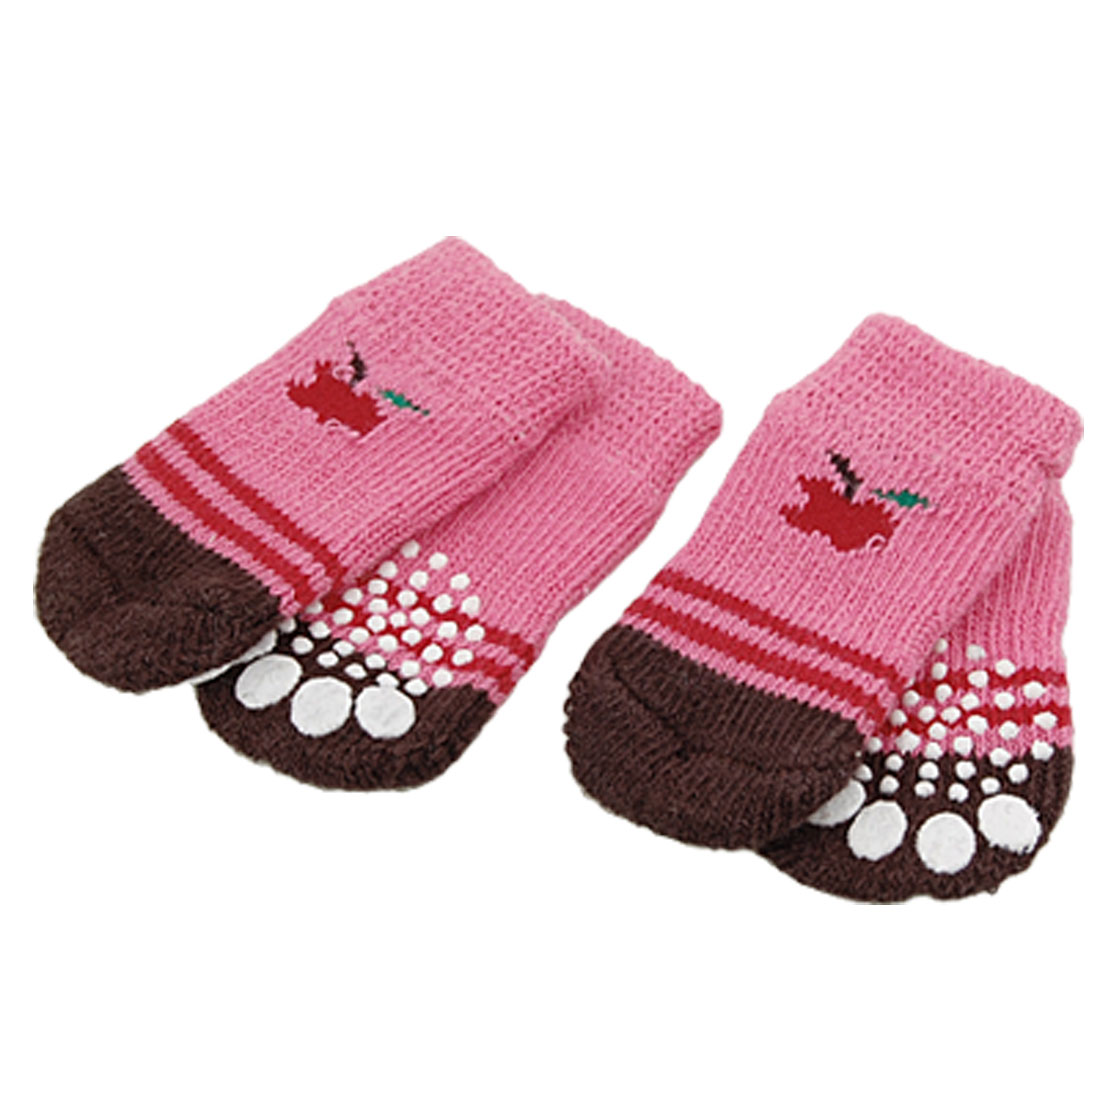 L6 x W3.1cm Pet Dog Puppy Doggie's Nonskid Socks 4PCS